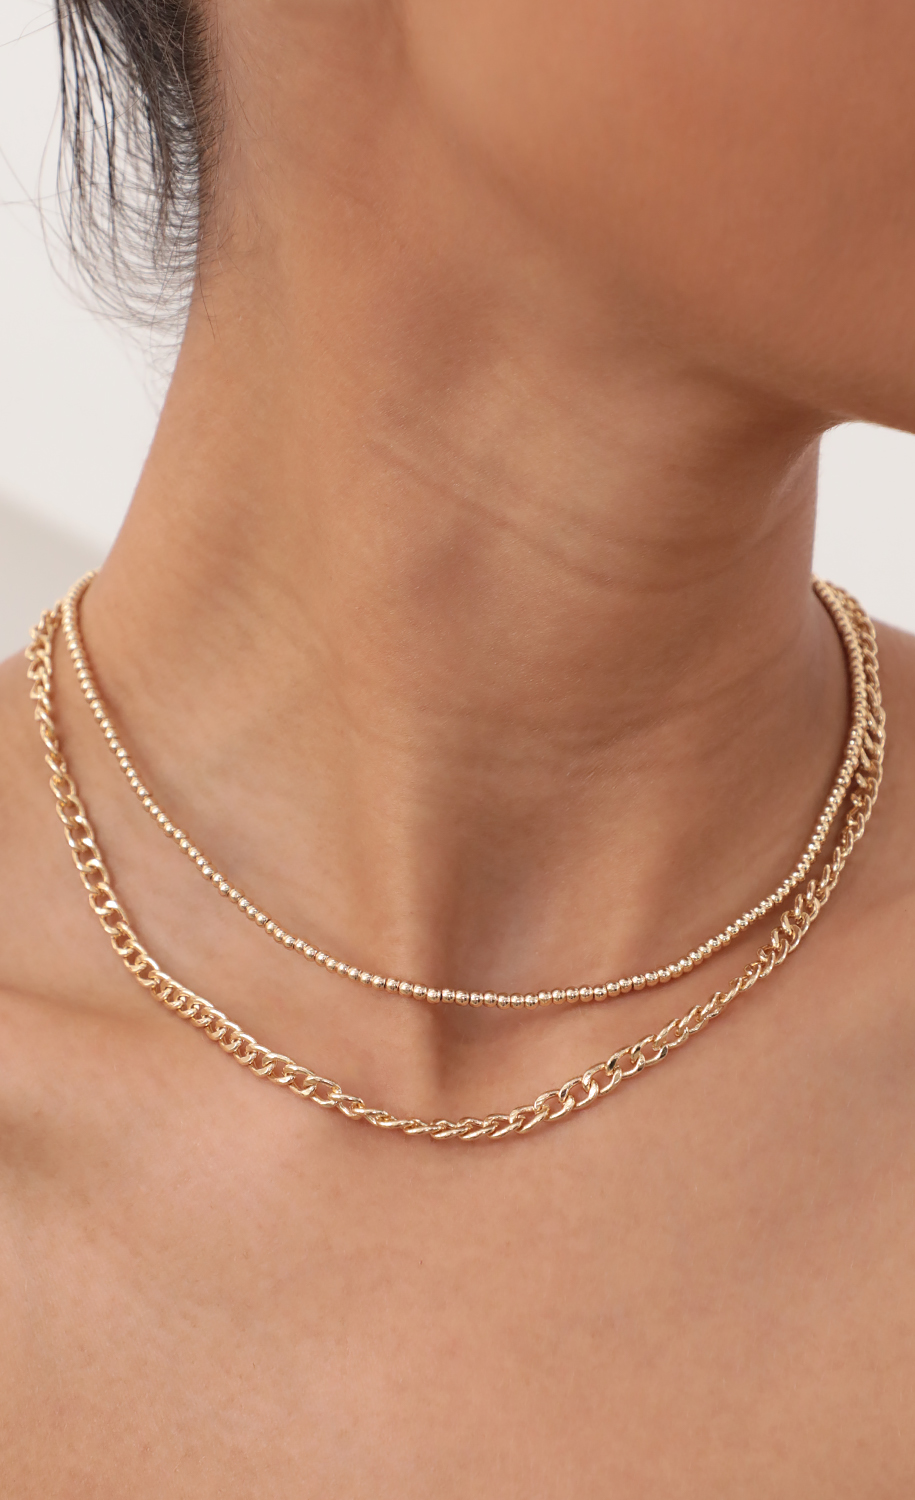 Beads and Chain Gold Necklace Set